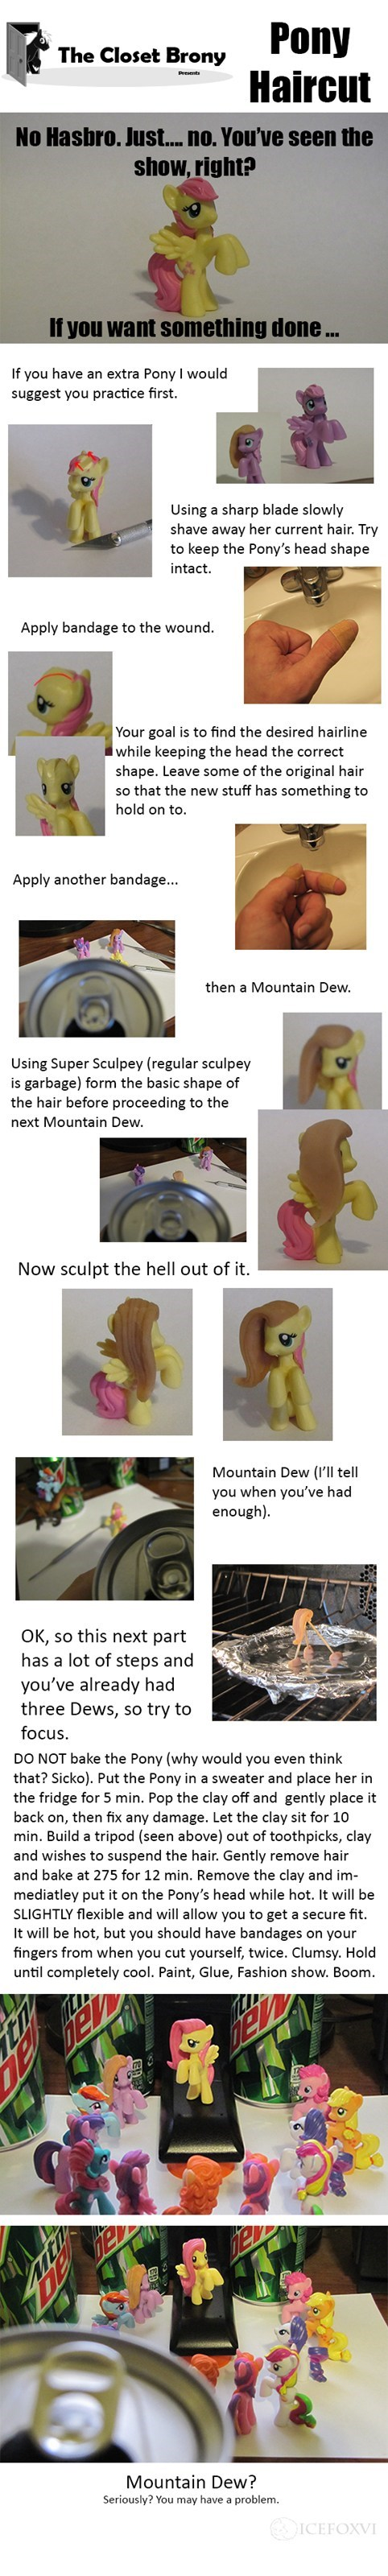 pony haircut Hasbro tldr - 7731323904